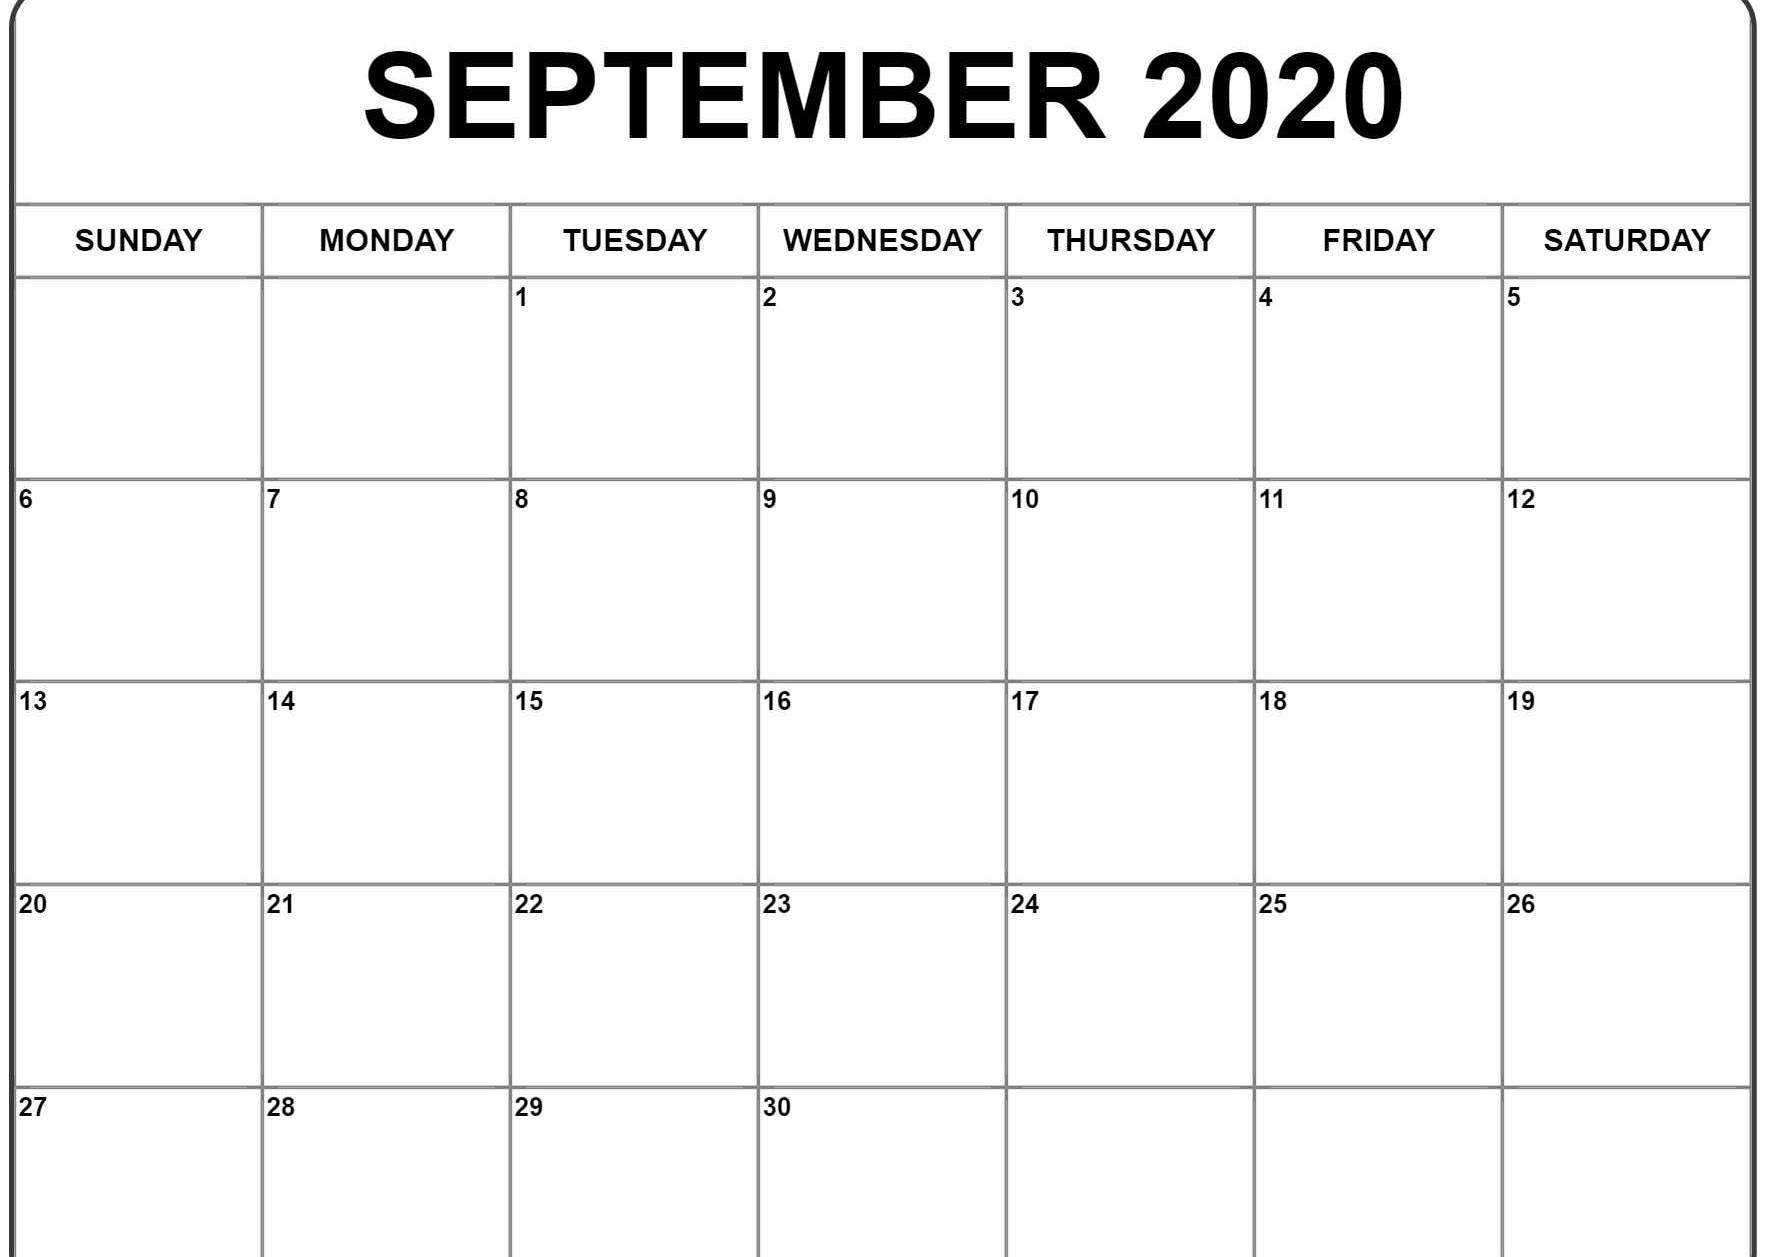 September 2020 Calendar | Calendar Template, Print Calendar for September 2020 Calendar Printable Template